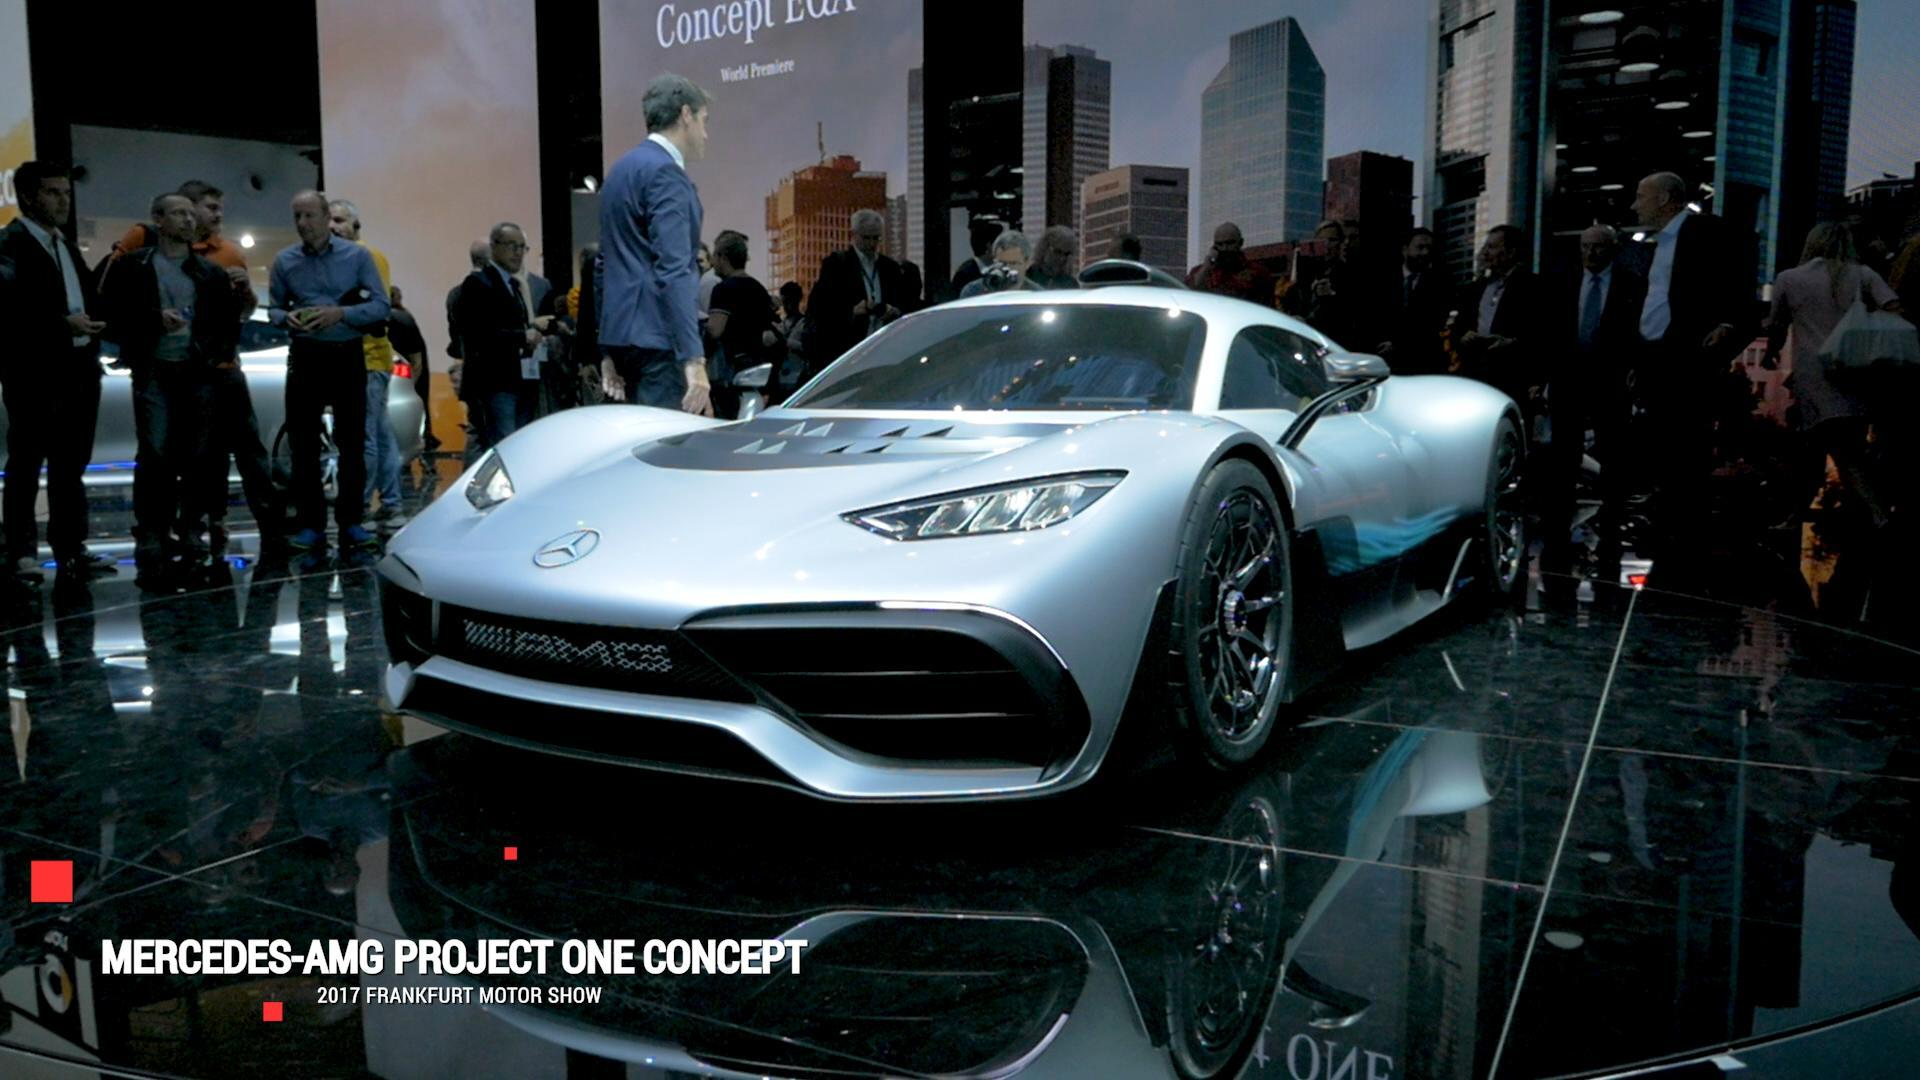 Mercedes-AMG Project One: Jaw-dropping power signals a new era in Mercedes performance